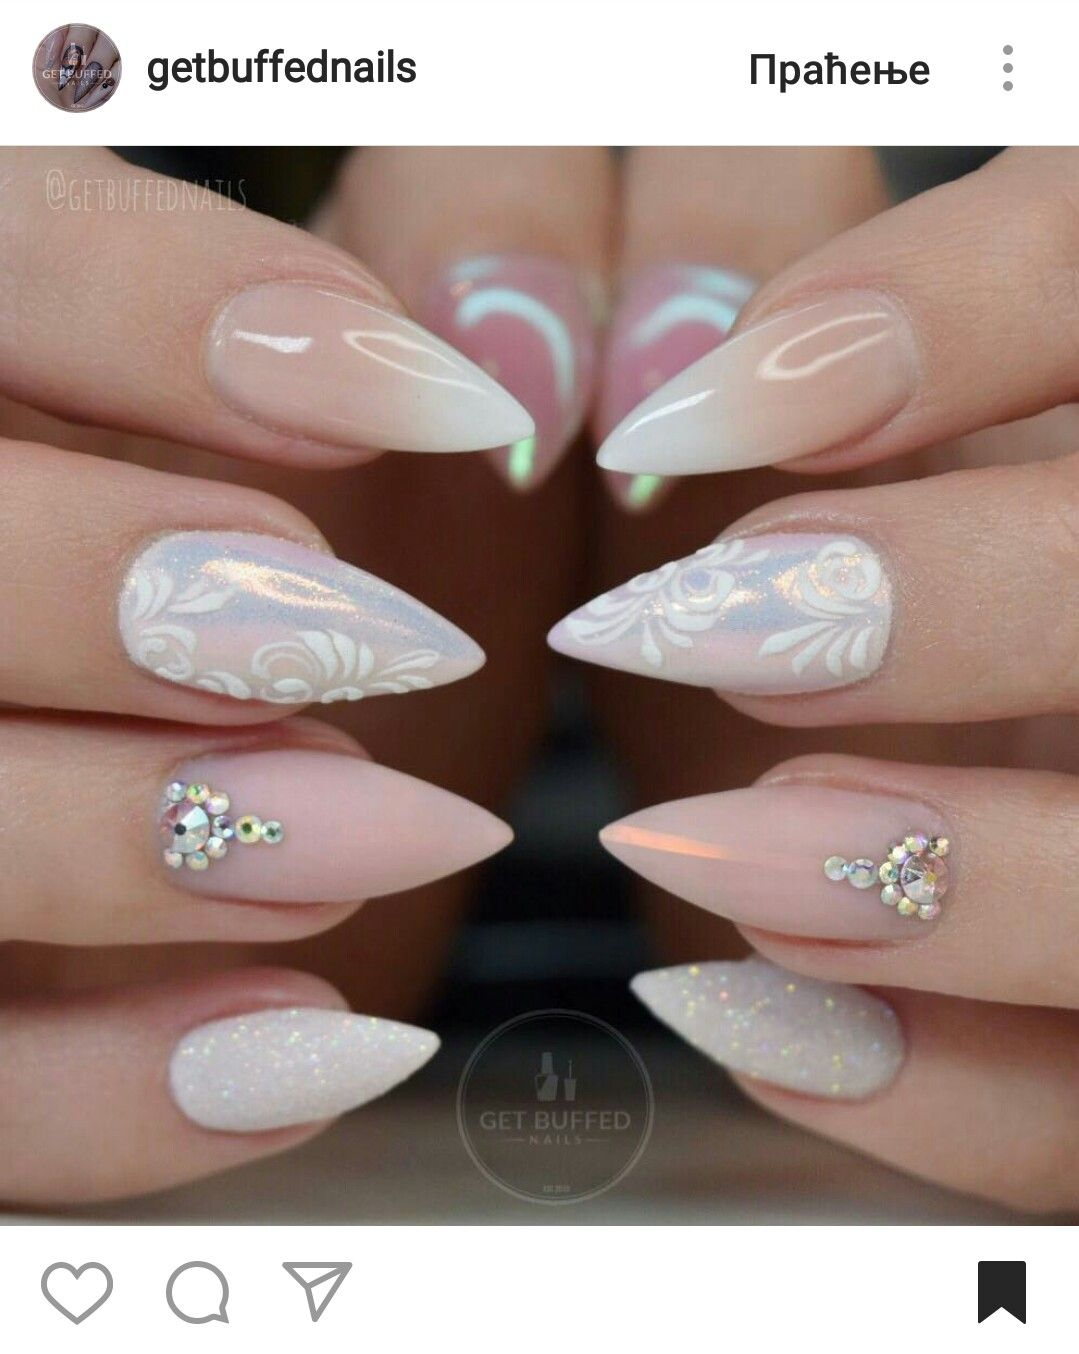 Stiletto Nails Fake Nails Matte Nails Blue Press On Nails: Stiletto Nude Ombre Glitter Nails #getbuffednails